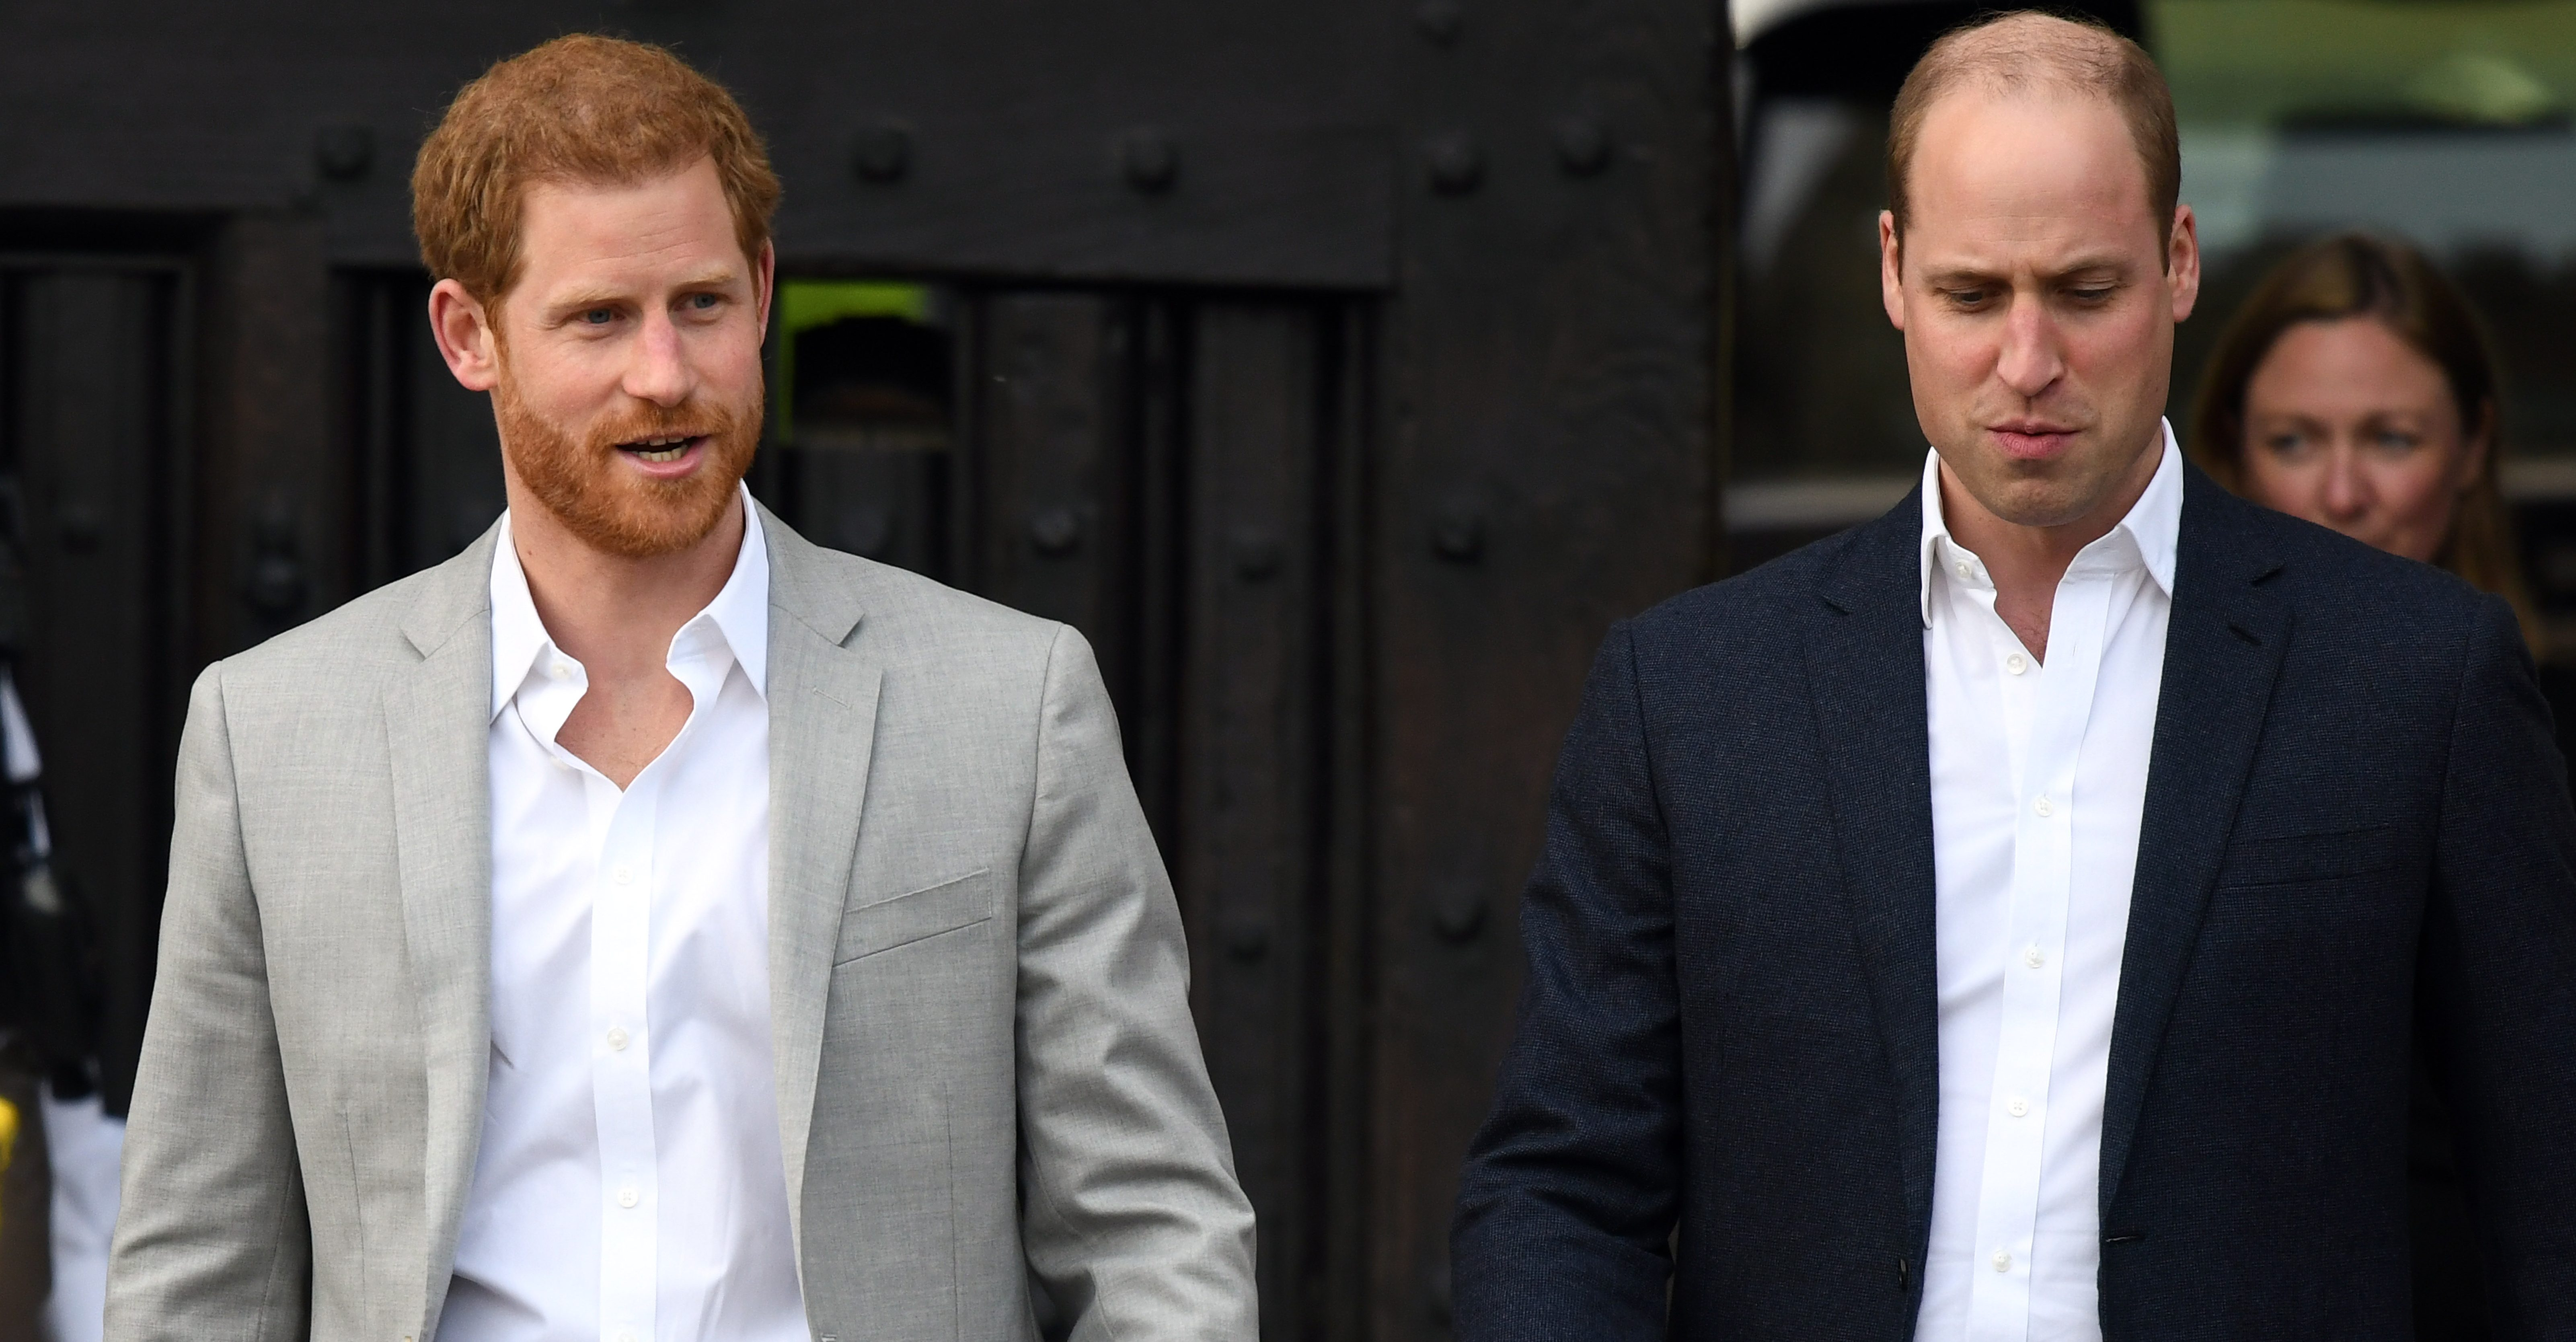 William and Harry 'had furious clash the night before families attended polo match last summer'